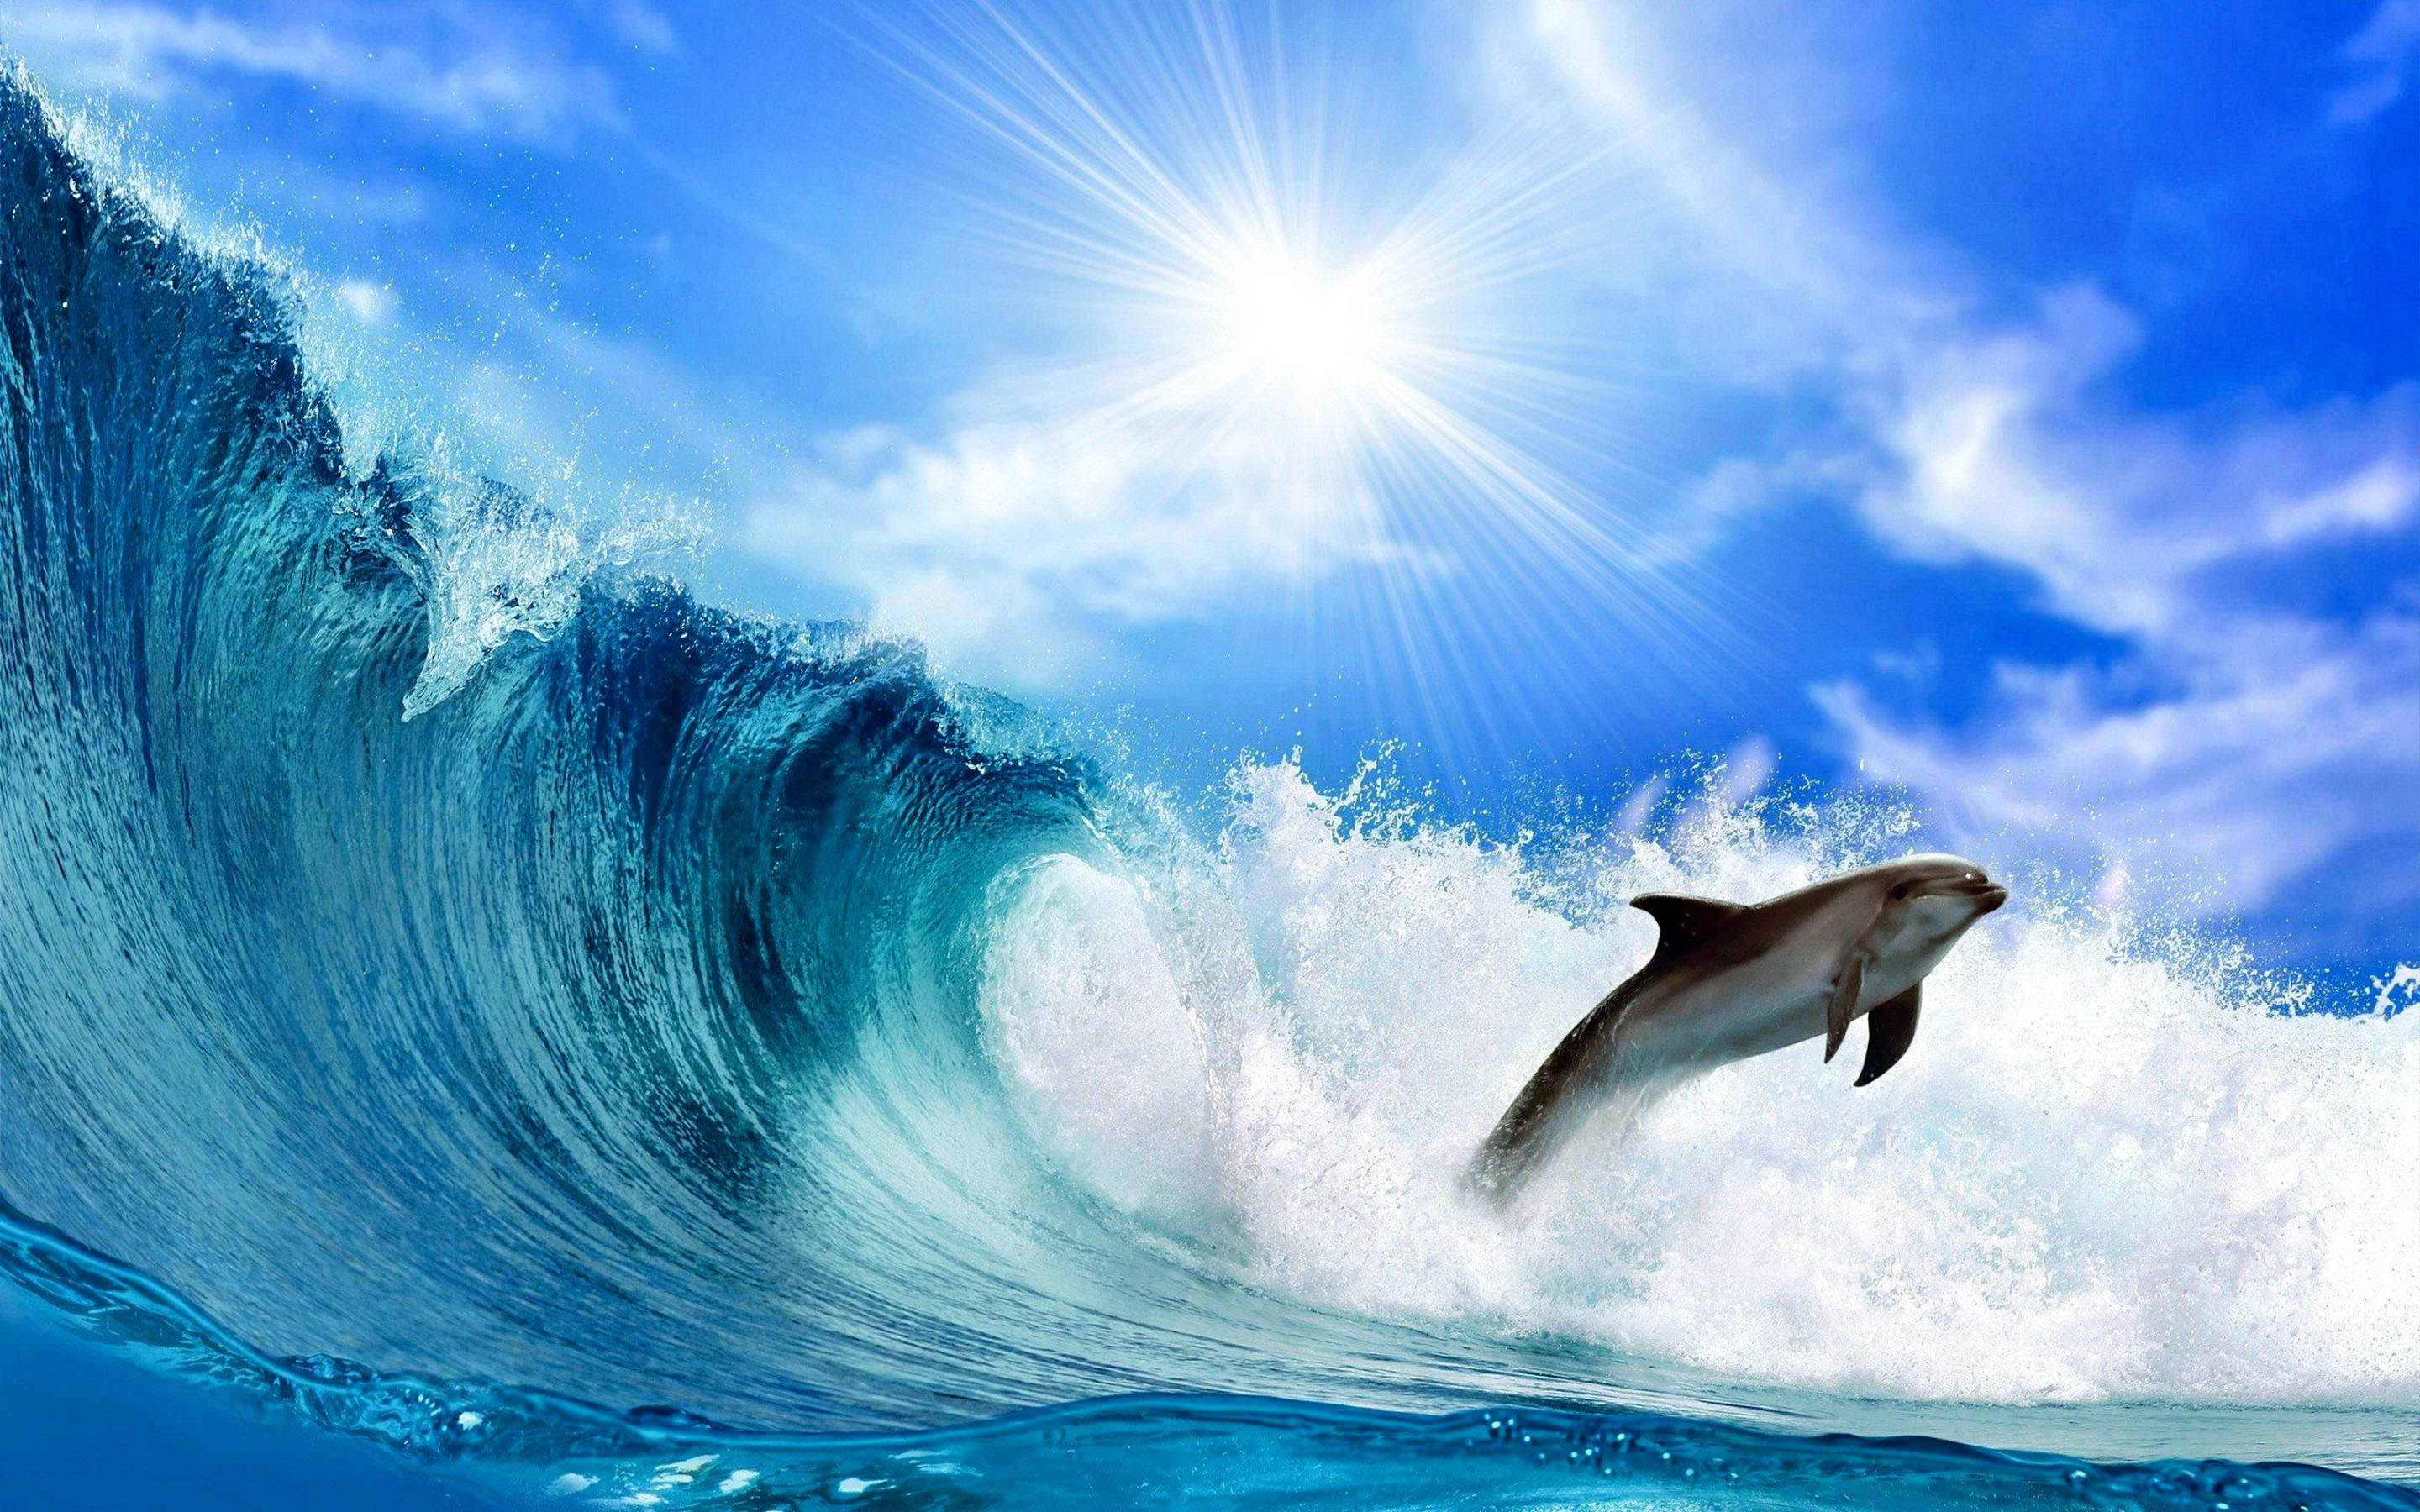 Hd Wallpapers: Dolphin Awesome HD Pictures, Images & Backgrounds (High